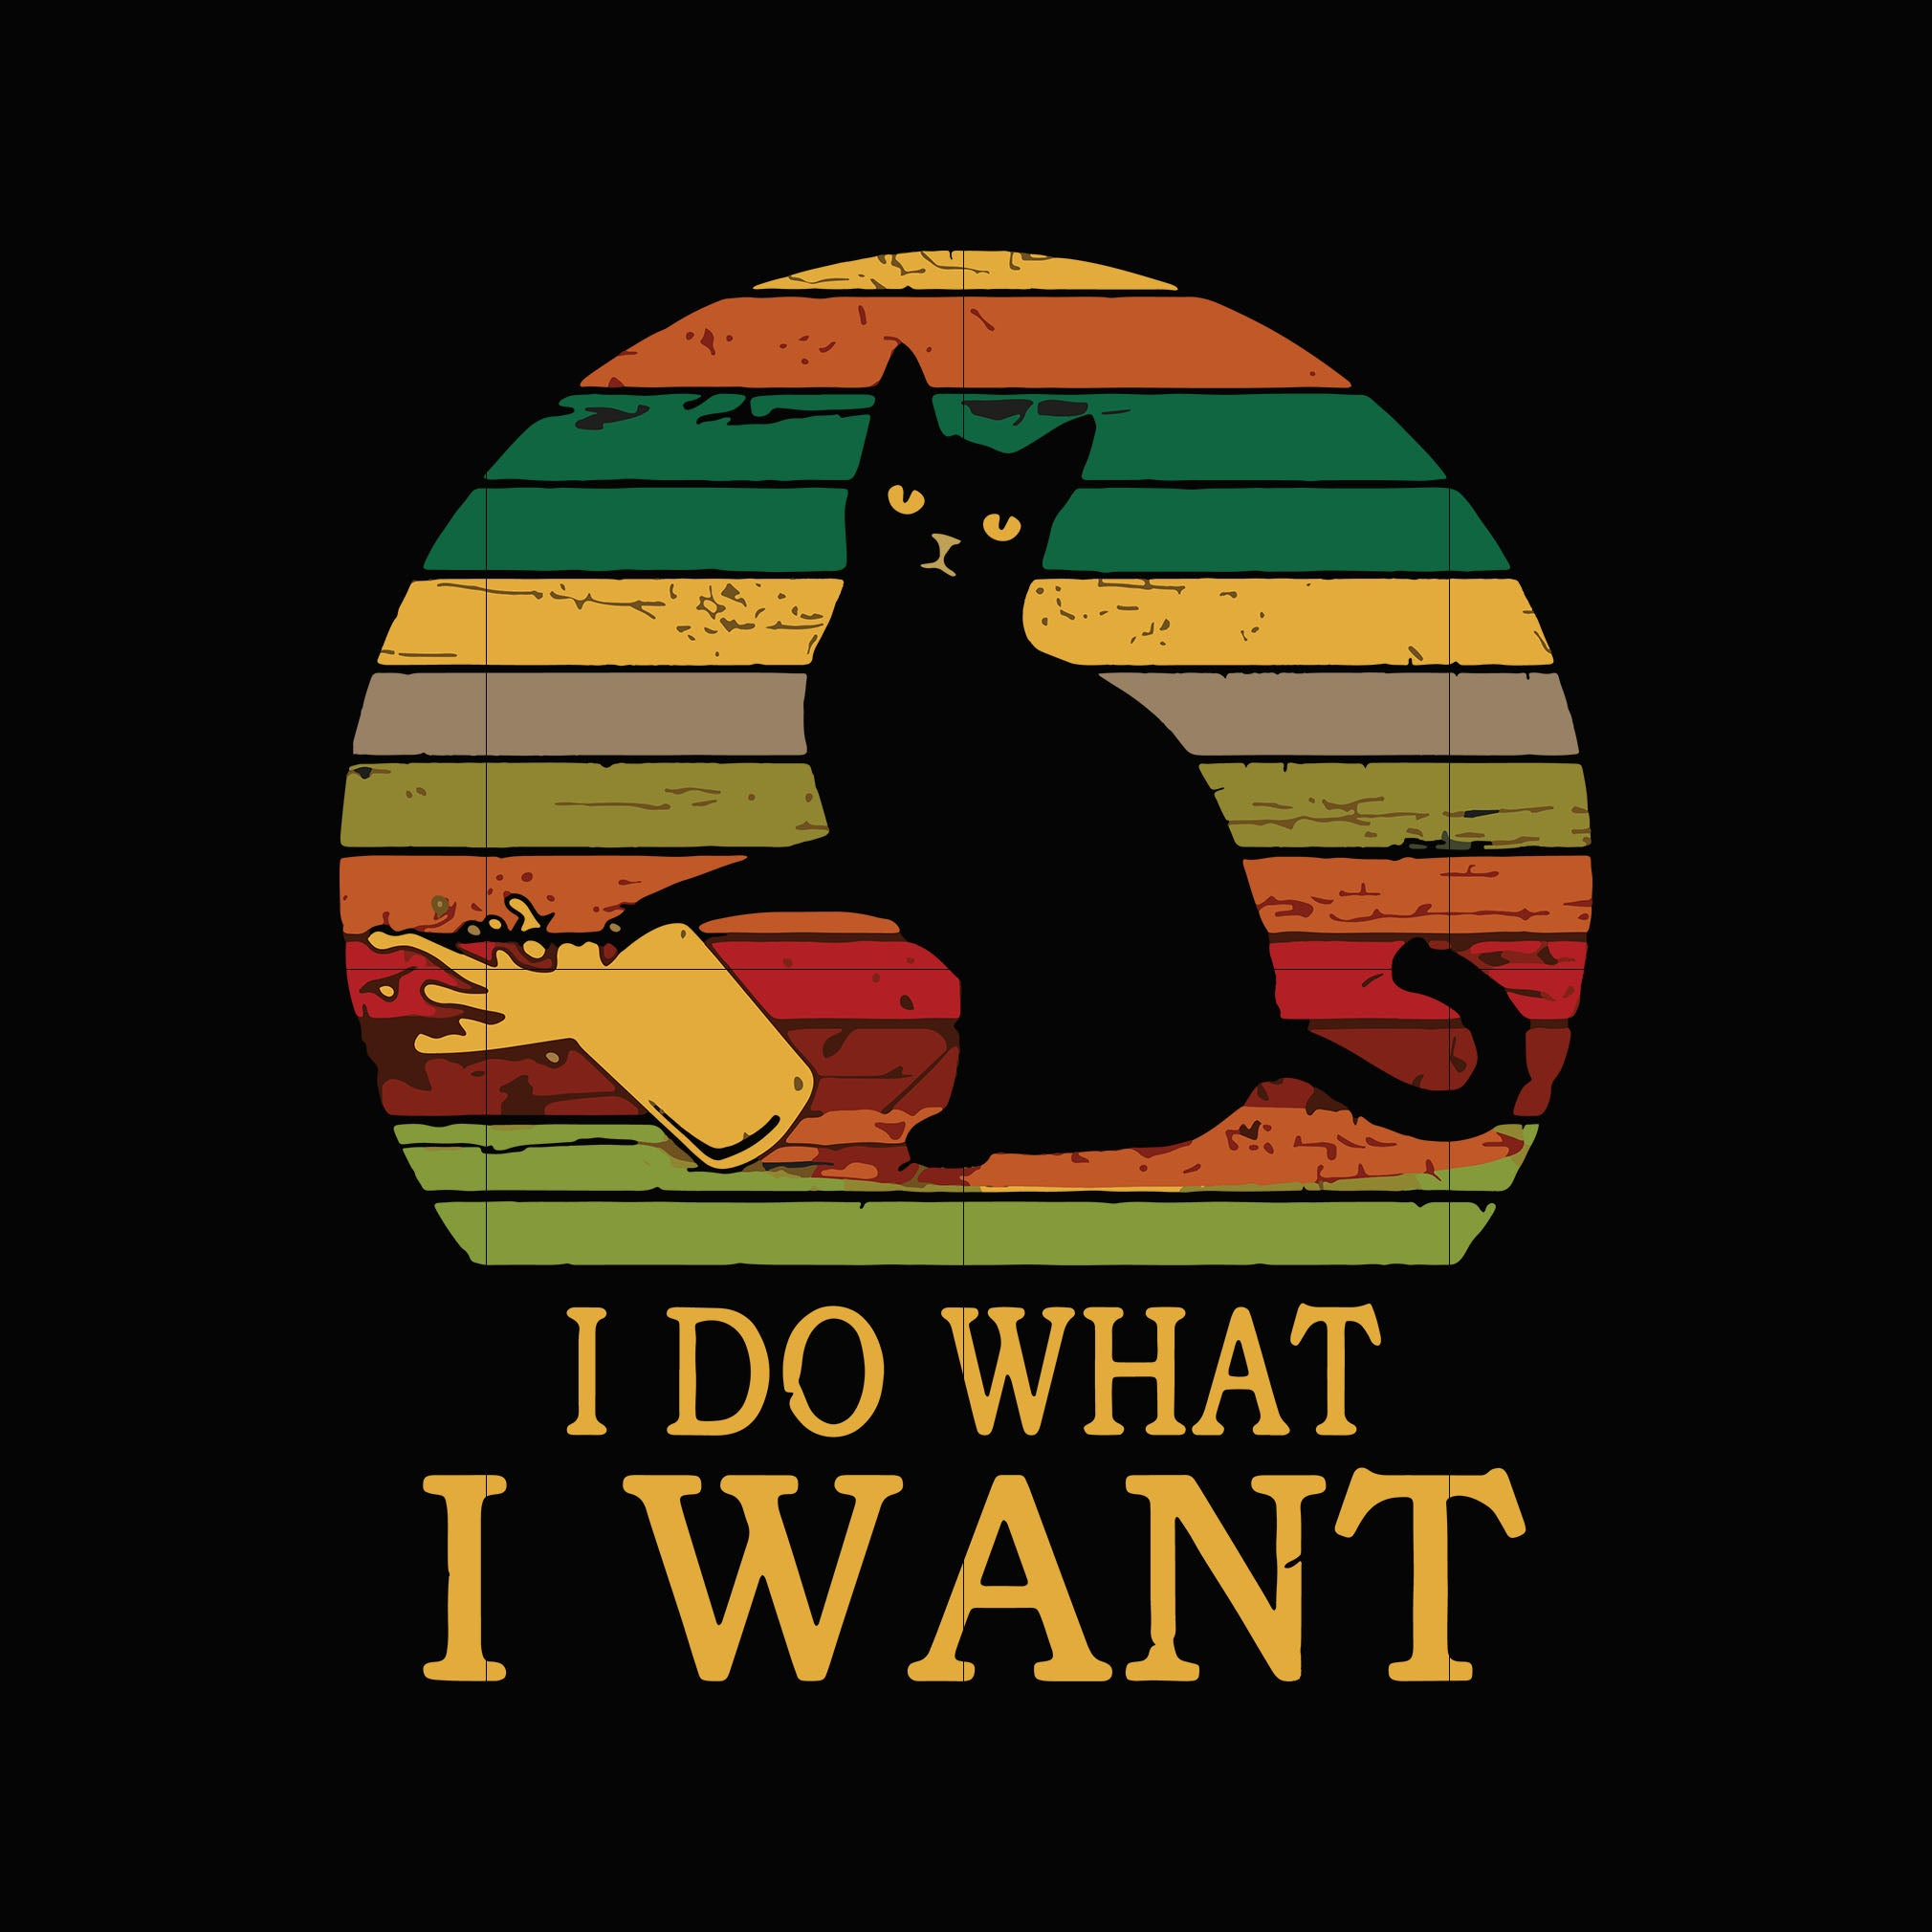 I do what i want svg,dxf,eps,png digital file